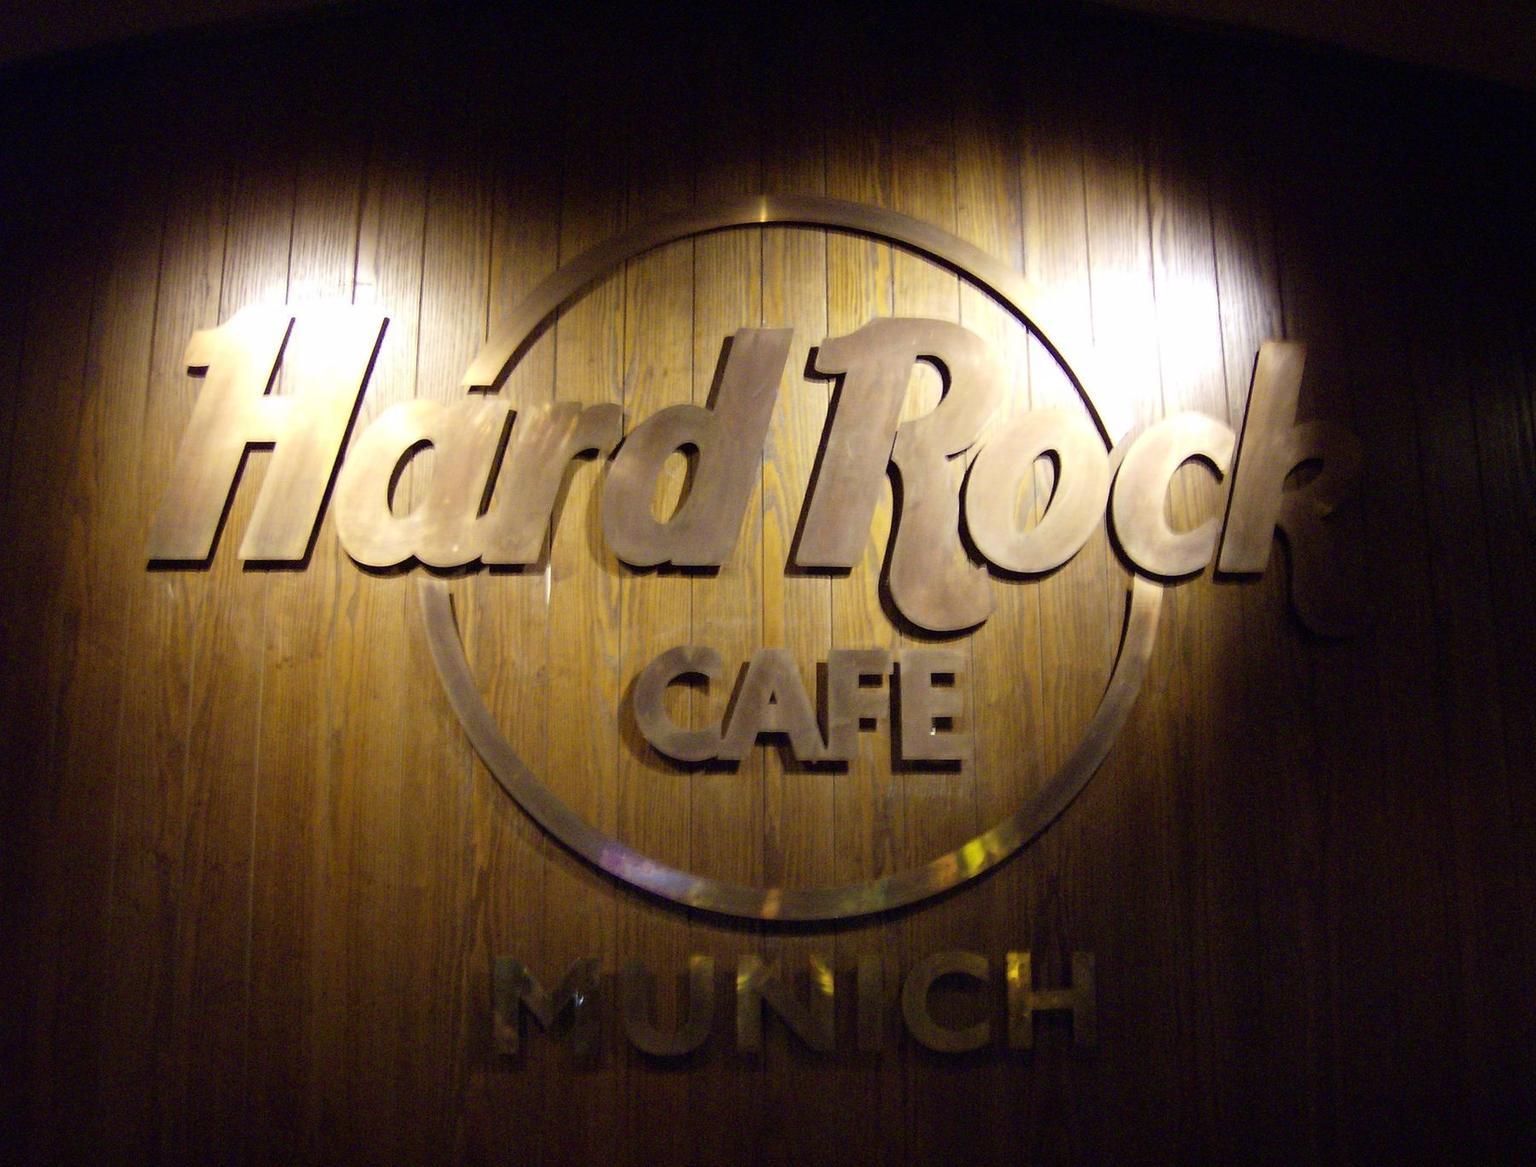 MORE PHOTOS, Hard Rock Cafe Munich Including Meal